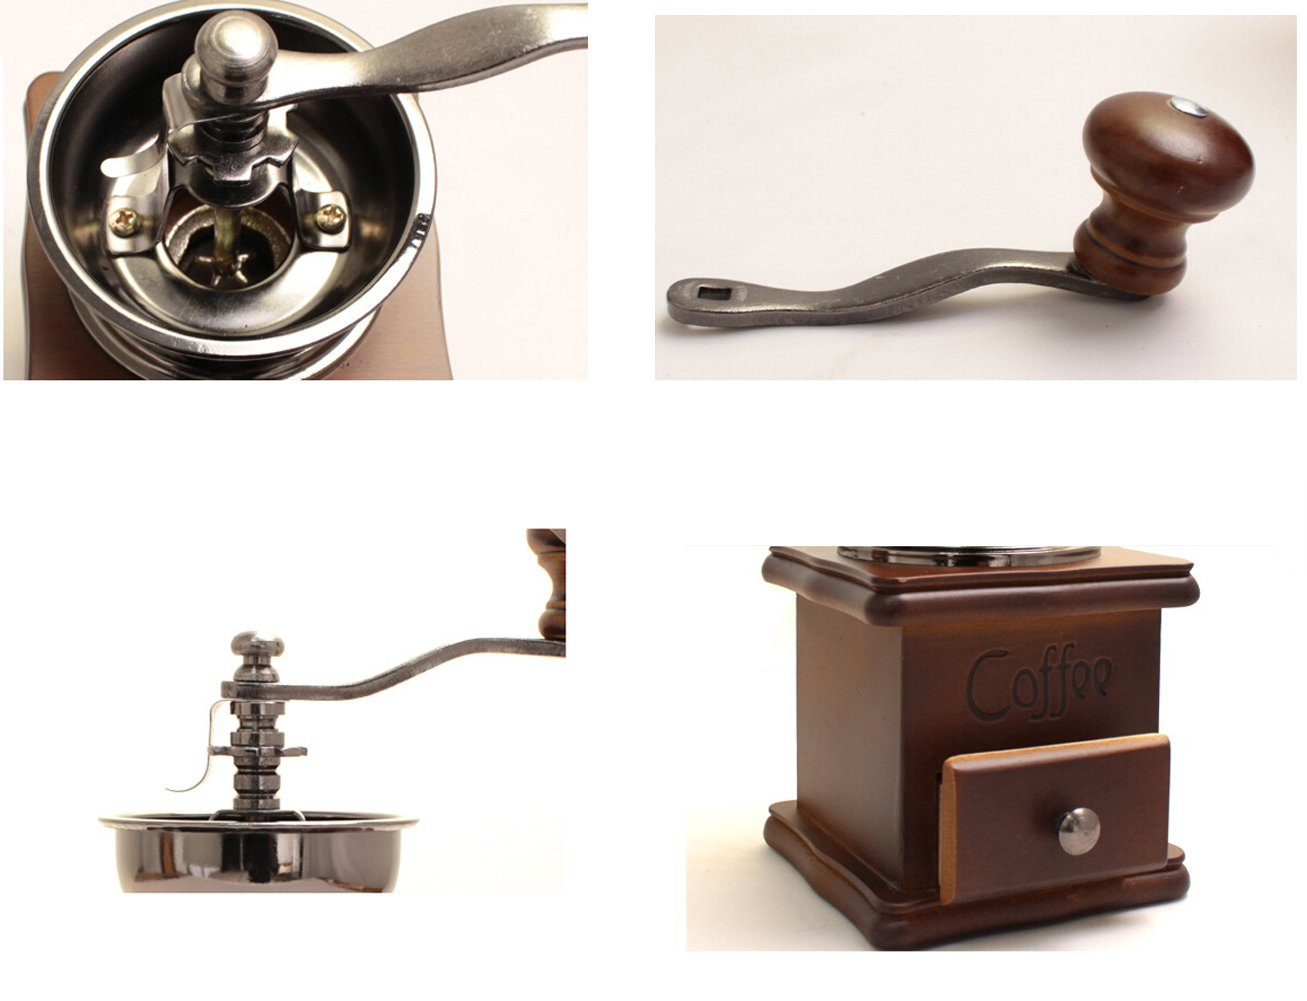 Vintage Mini Manual Coffeemaker Mill Wood Stand Metal Bowl Antique Hand Coffee Bean Grinder, Small,with Coffee Scoop Spoon by Kederastyle (Image #7)